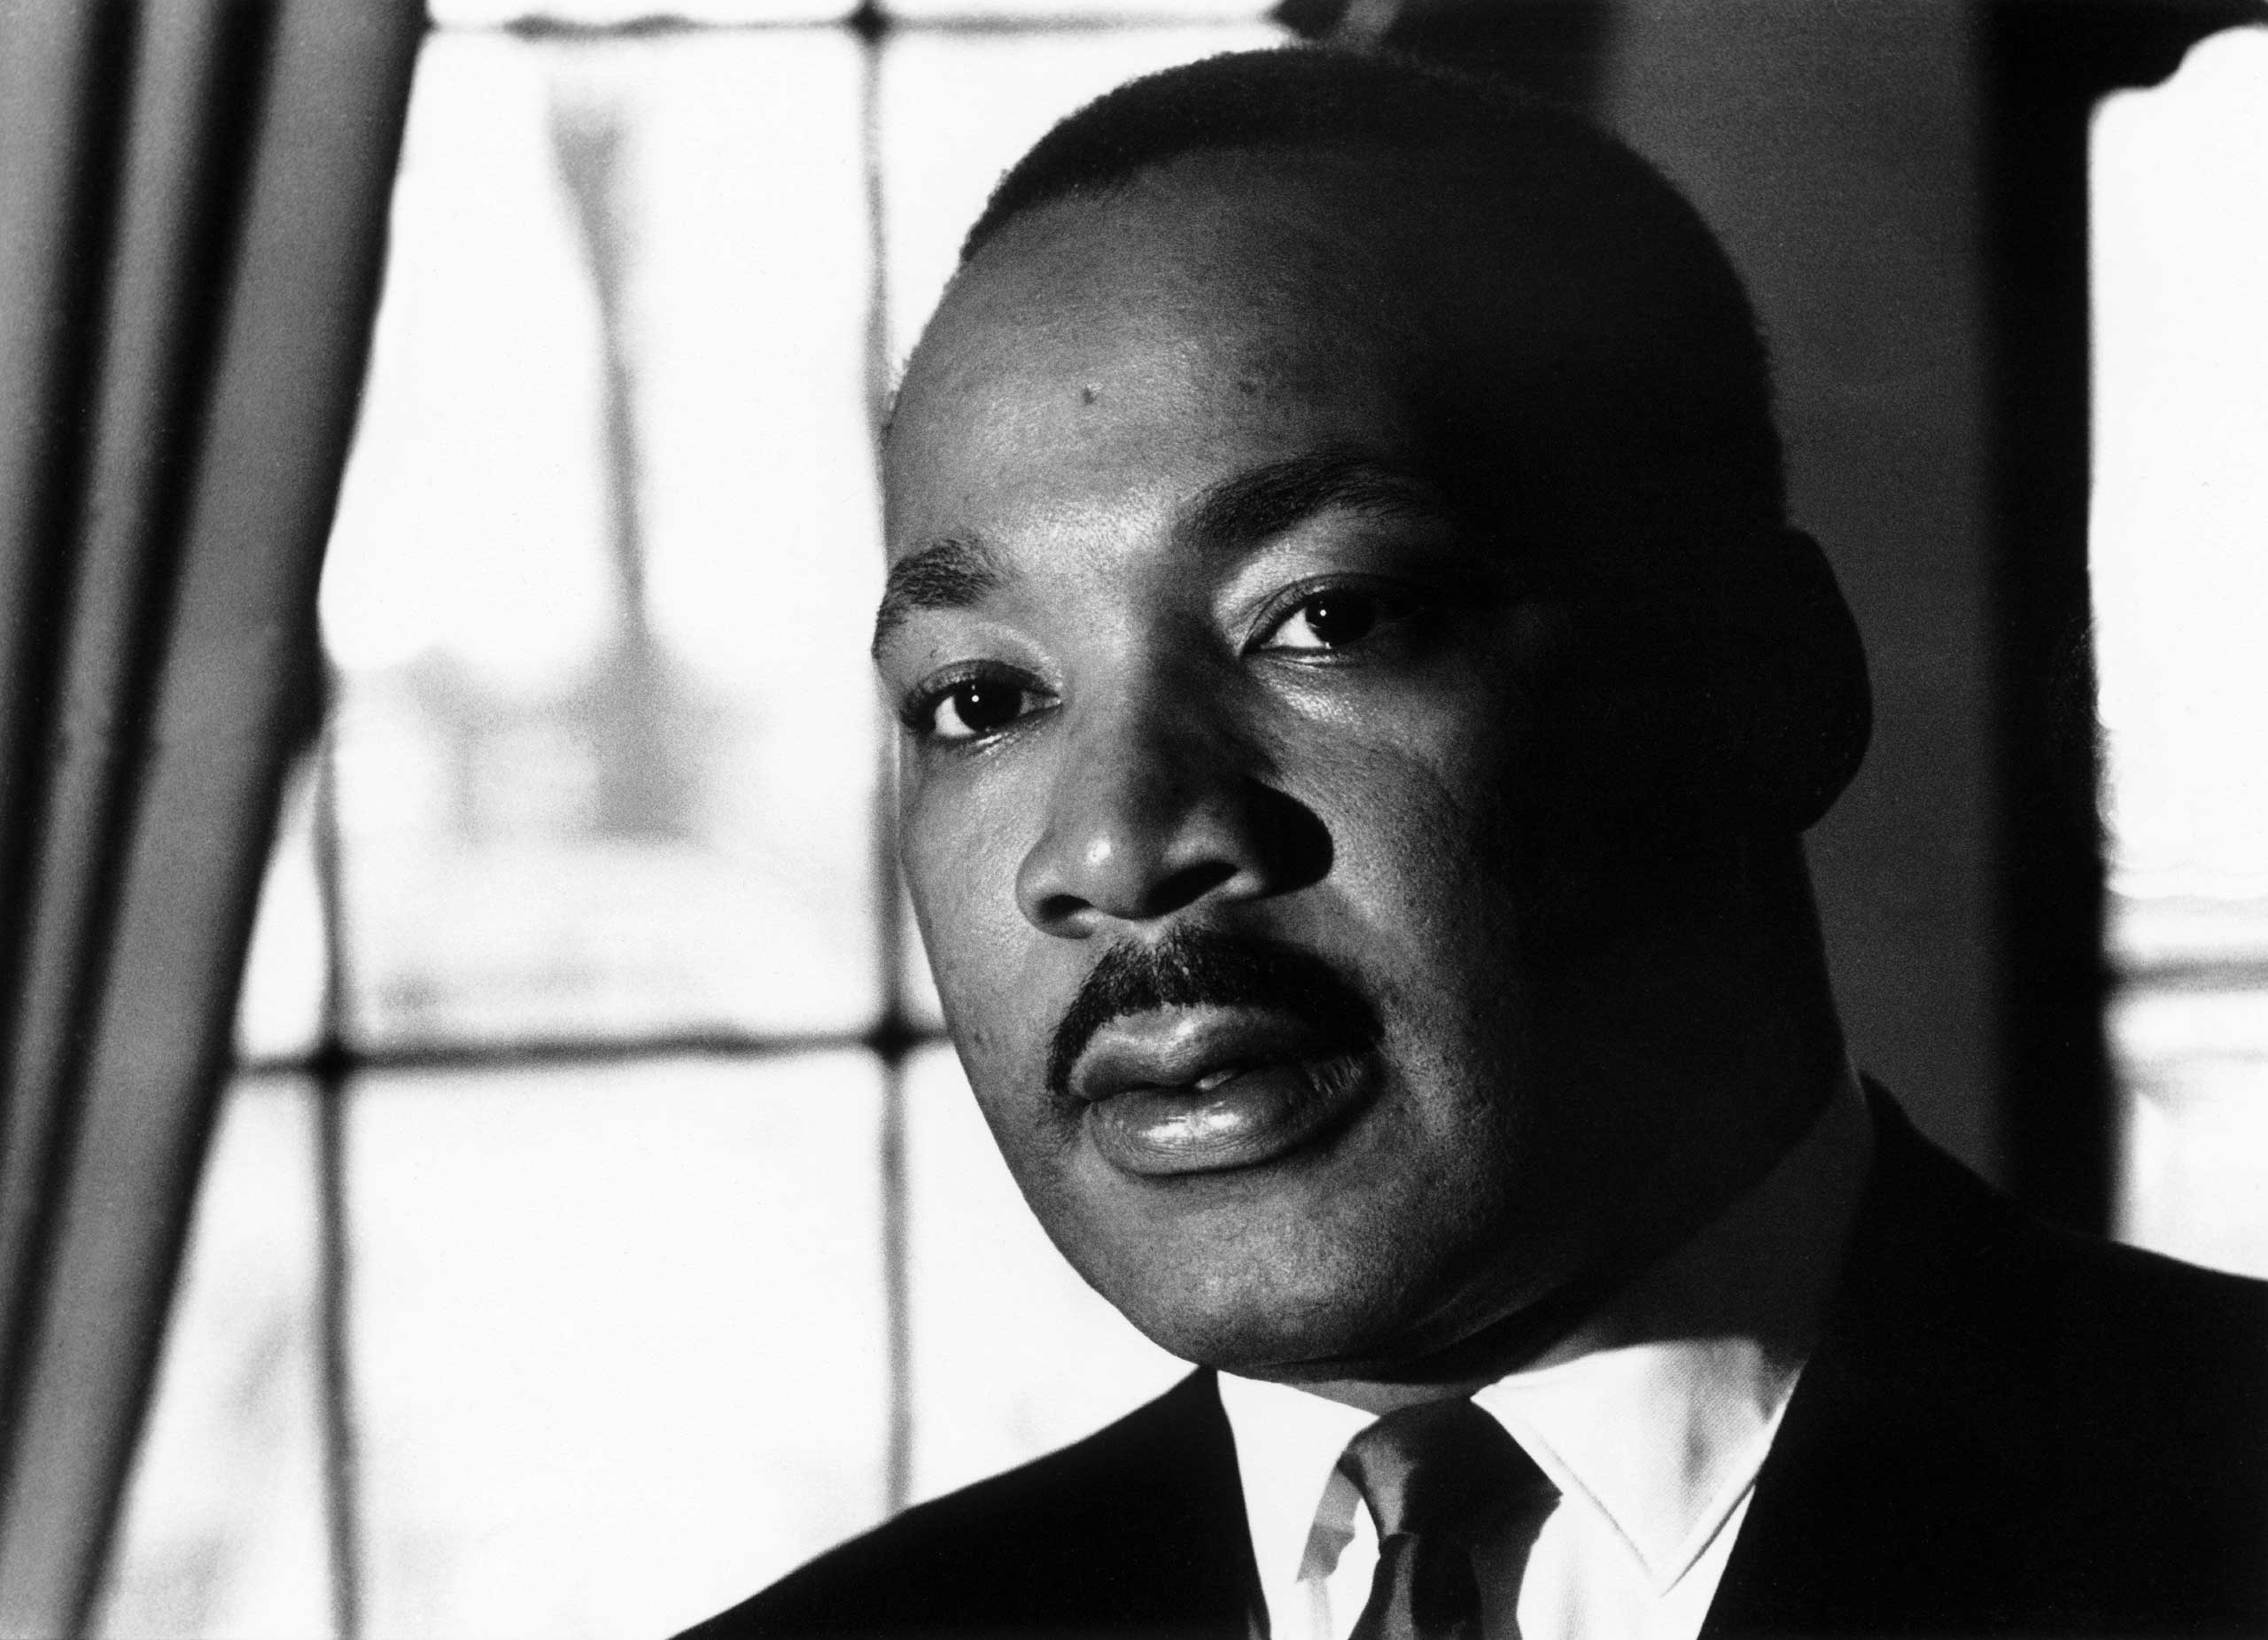 Martin Luther King, Jr., 1964 First person in the Western world to have shown us that a struggle can be waged without violence